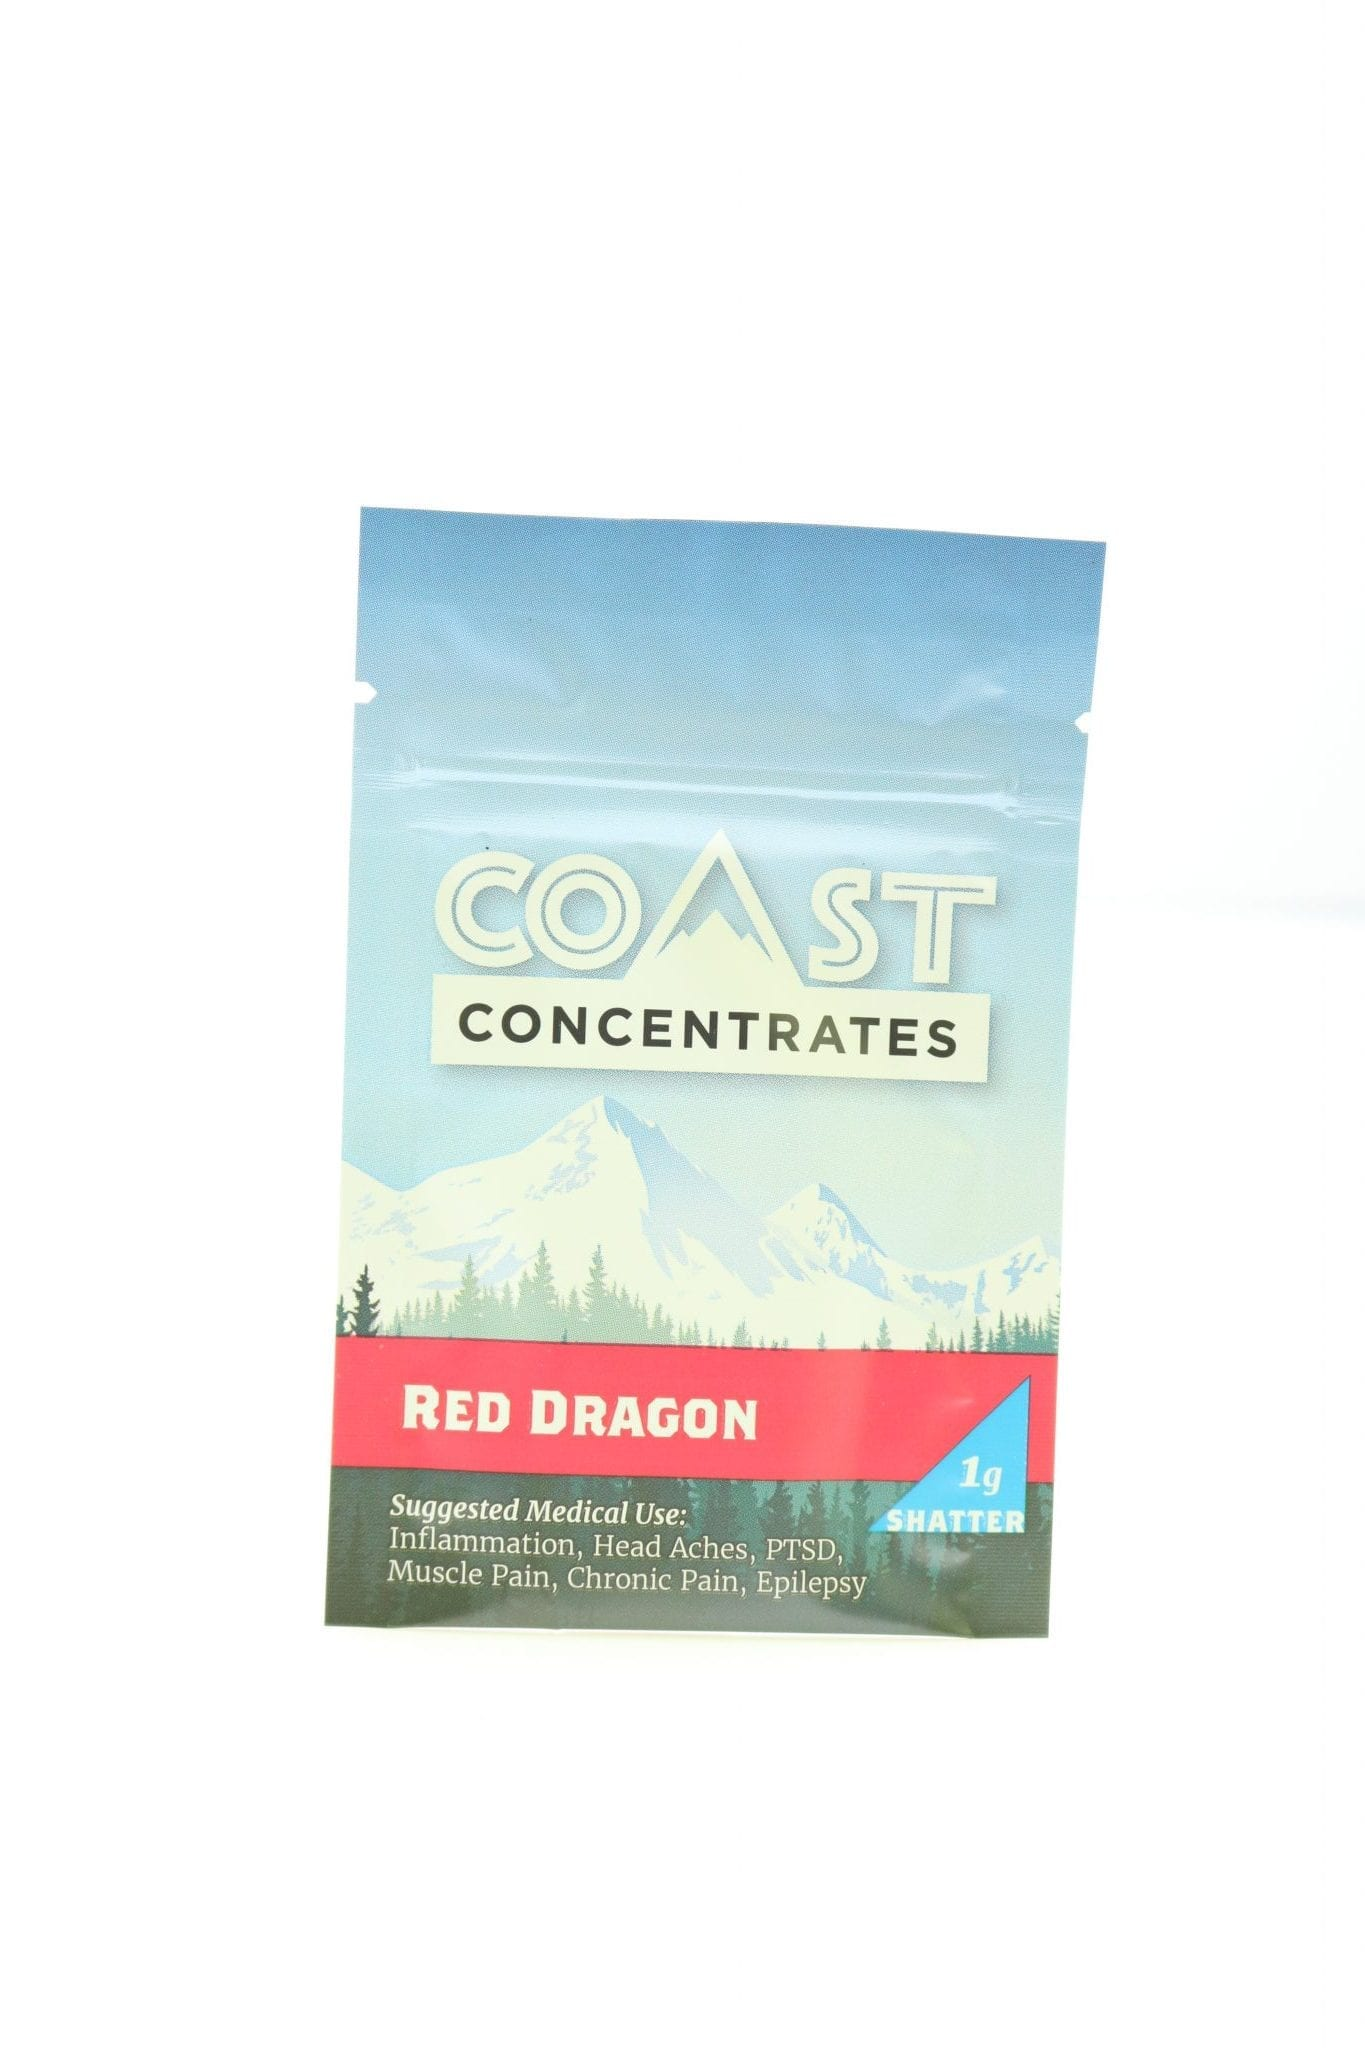 Red Dragon Coast Concentrates